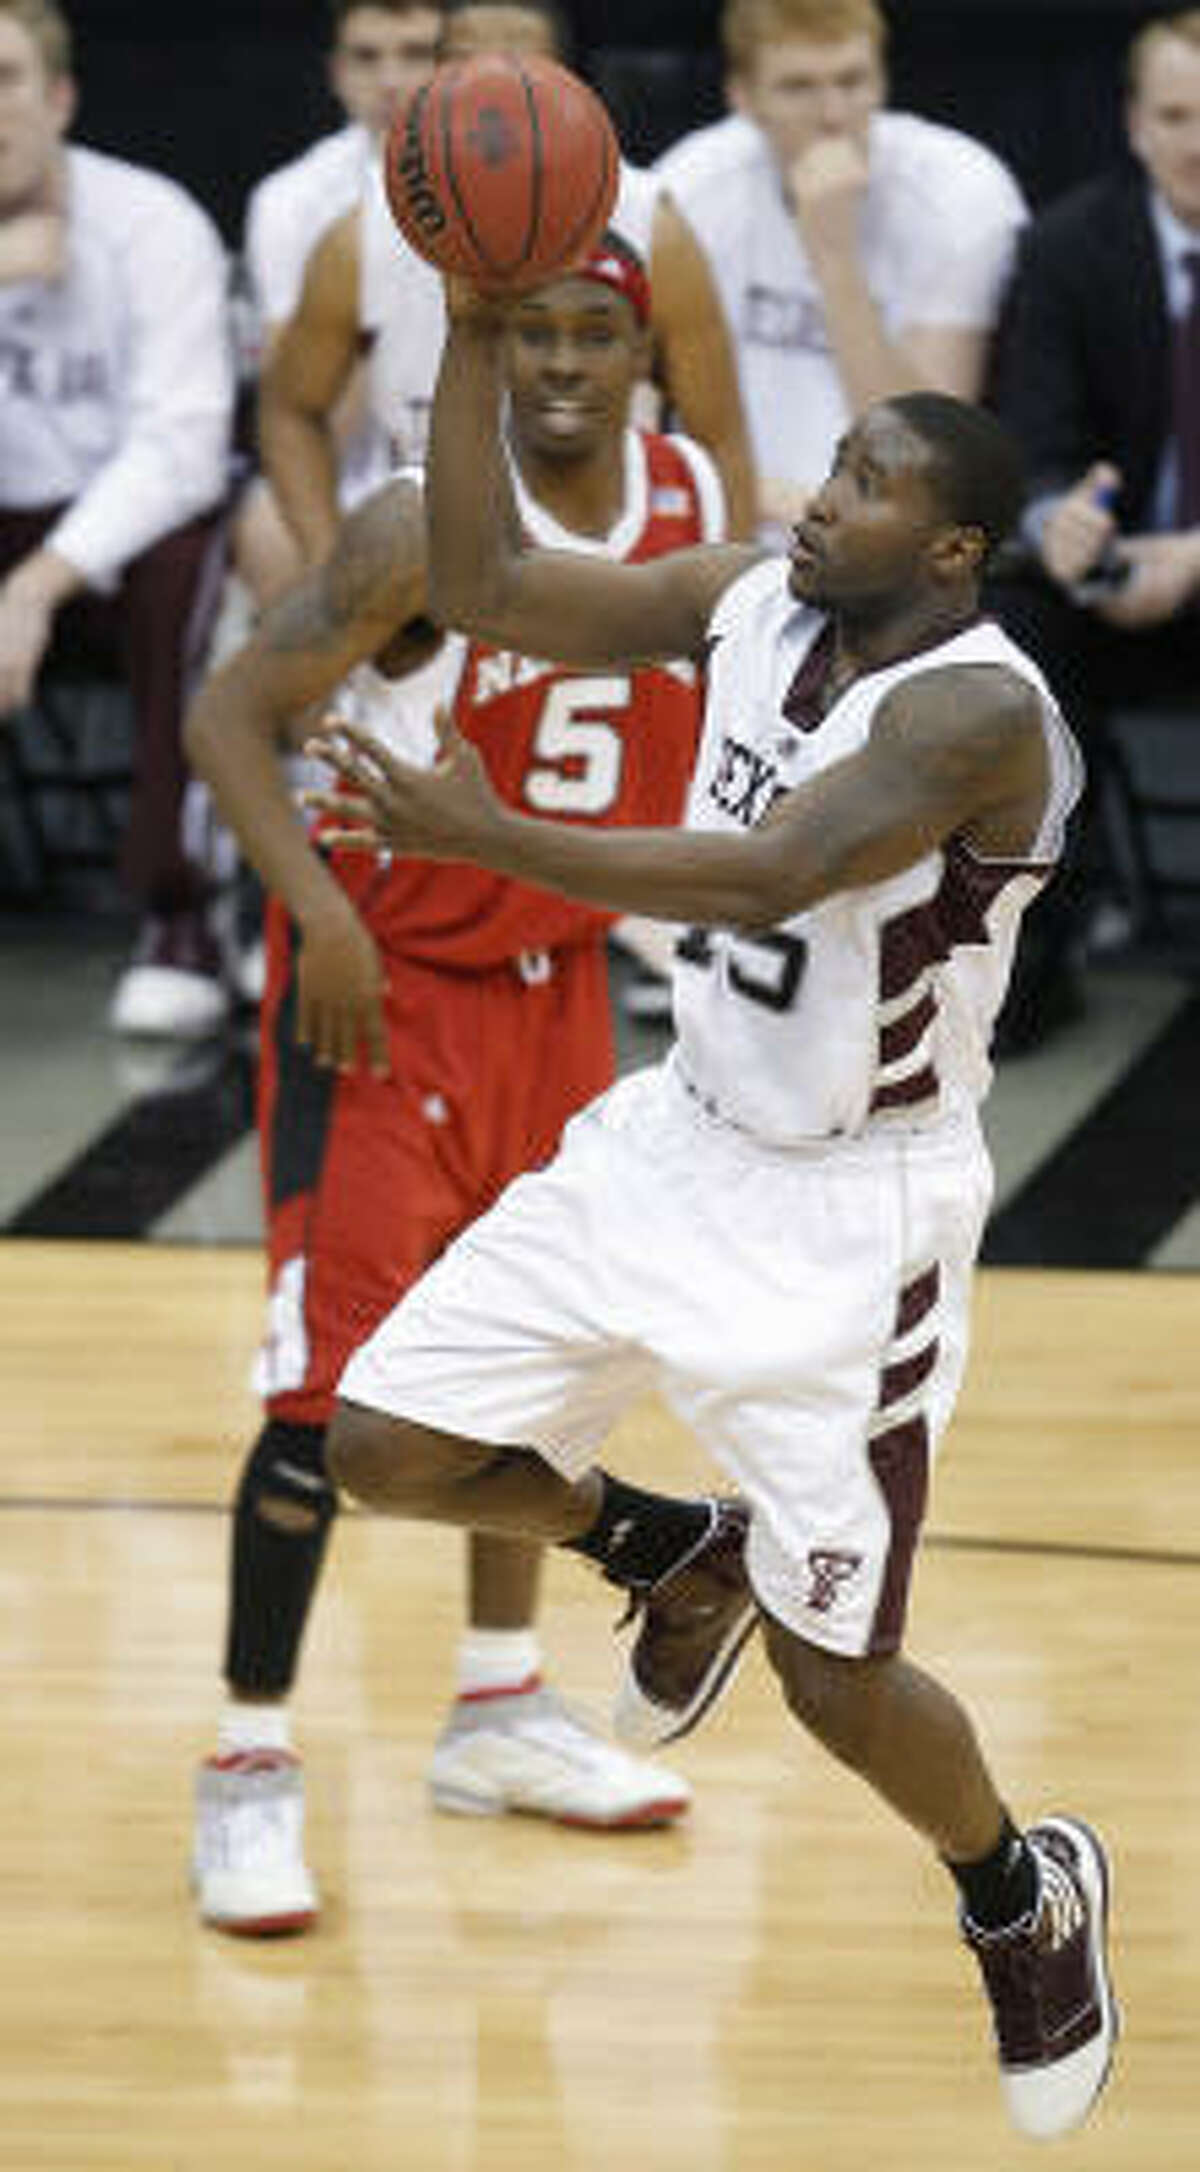 Texas A&M guard Donald Sloan drives past Nebraska guard Sek Henry for two of his 23 points.